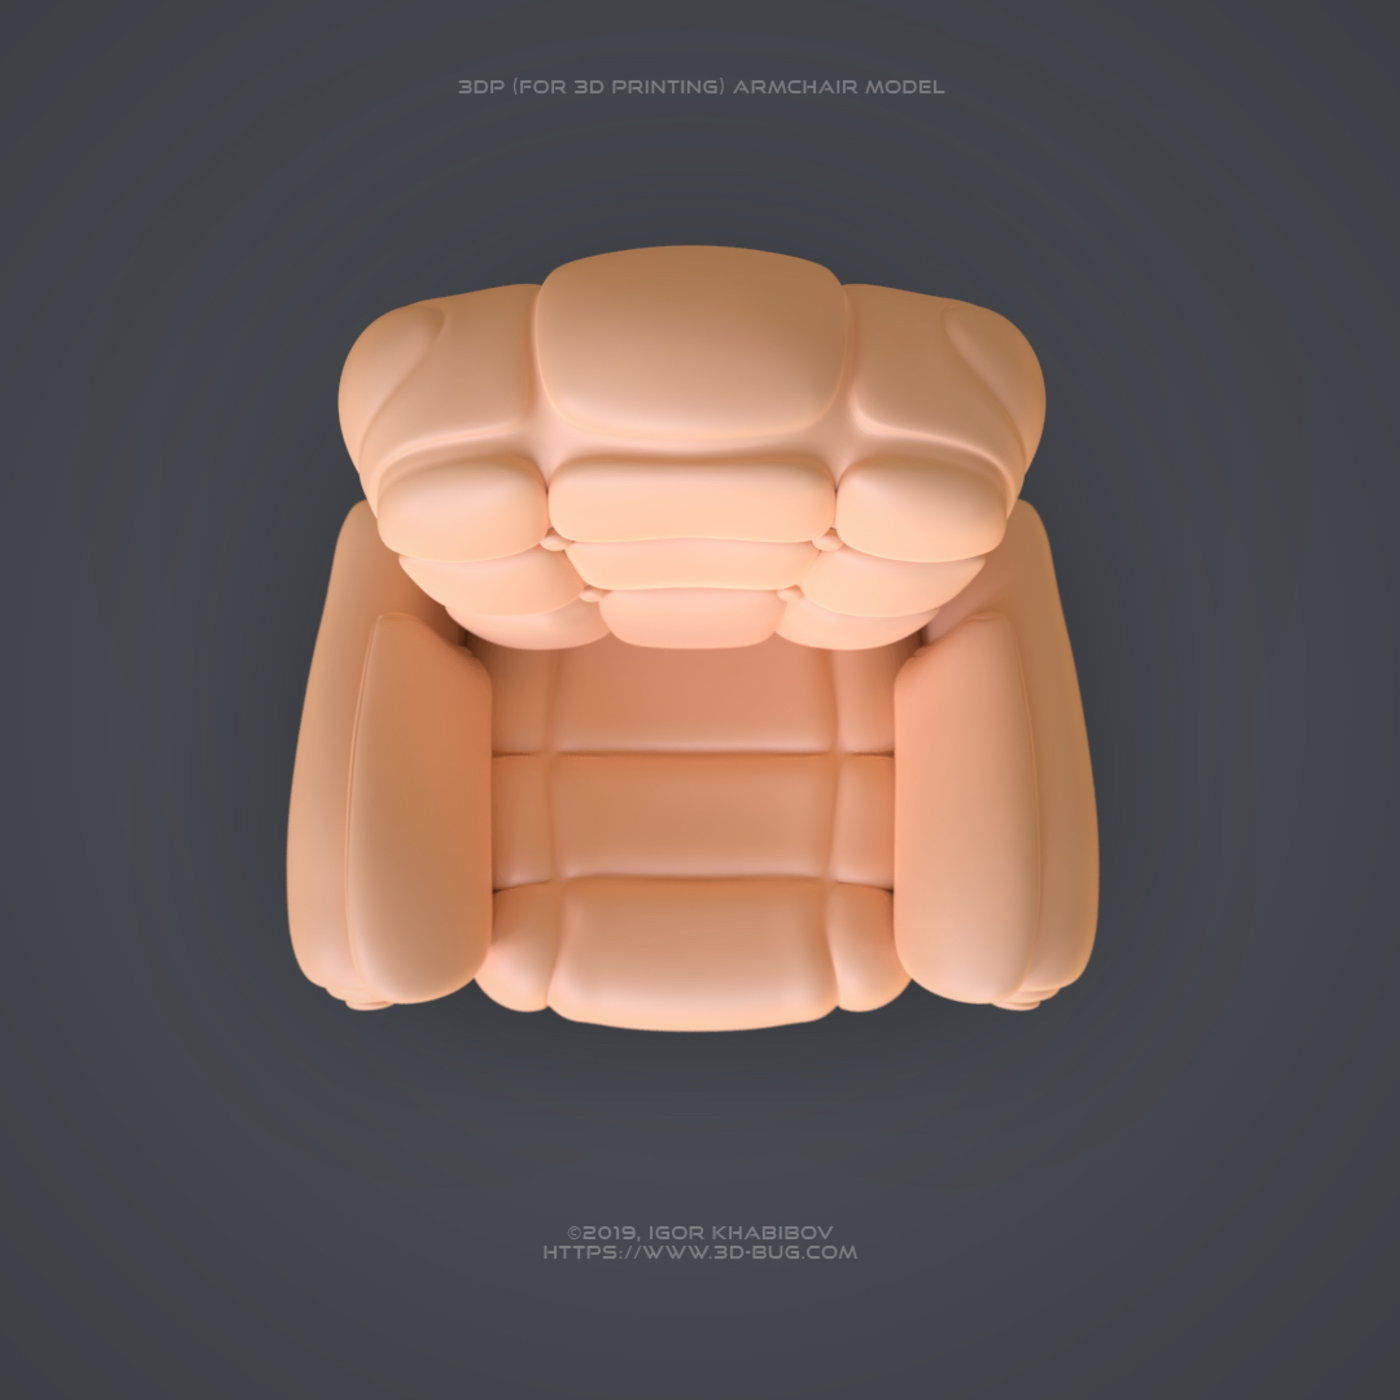 Armchair for 3D Printing